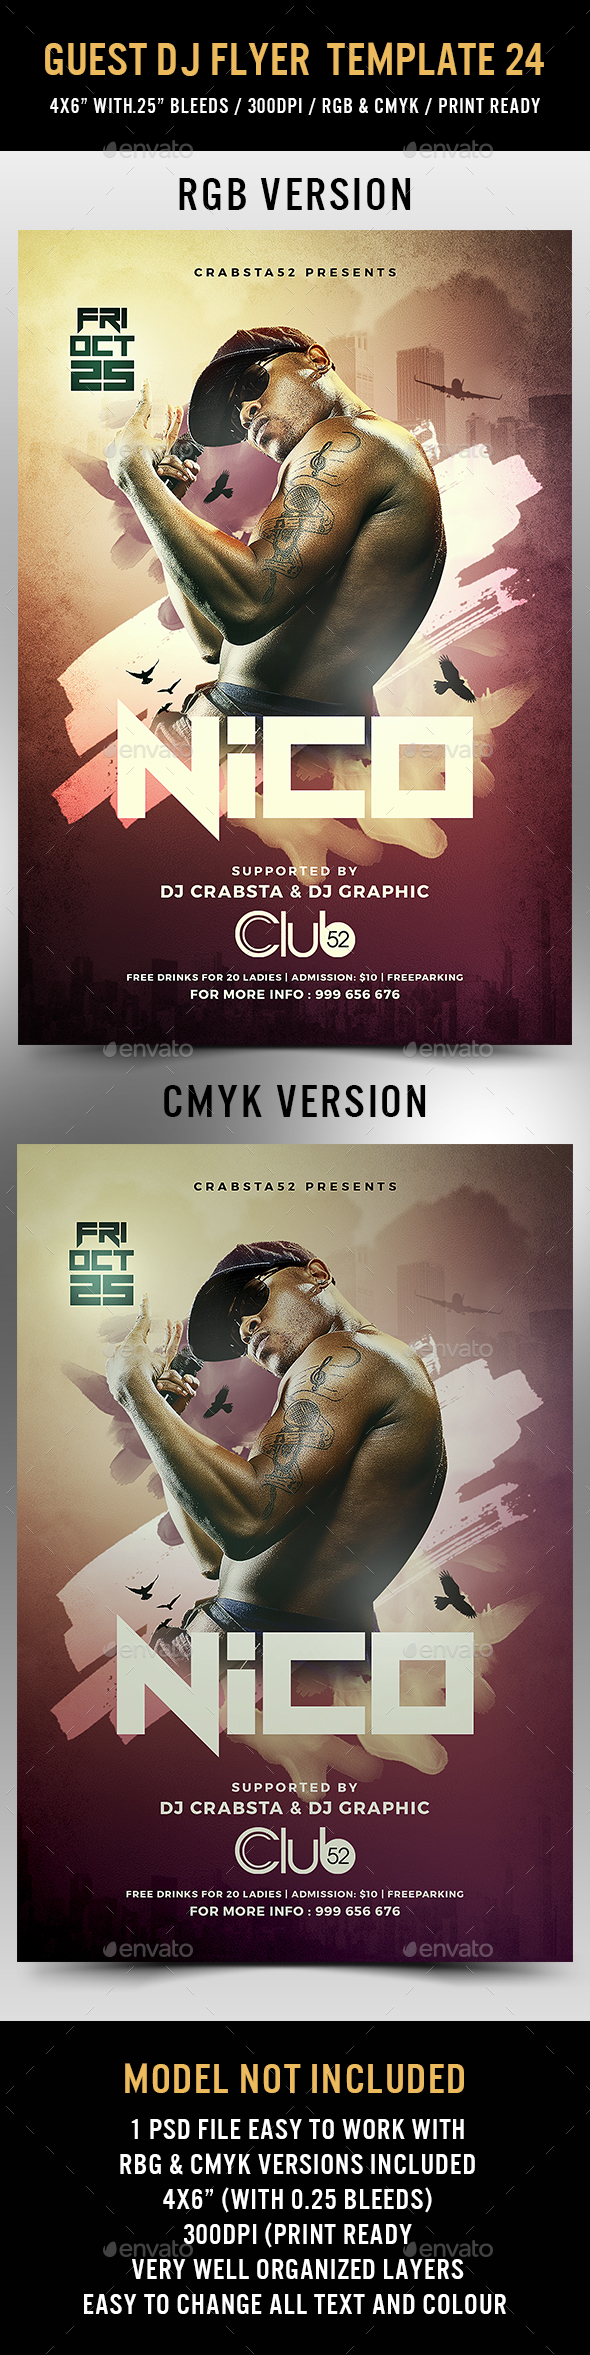 GraphicRiver Guest DJ Flyer Template 24 20606739